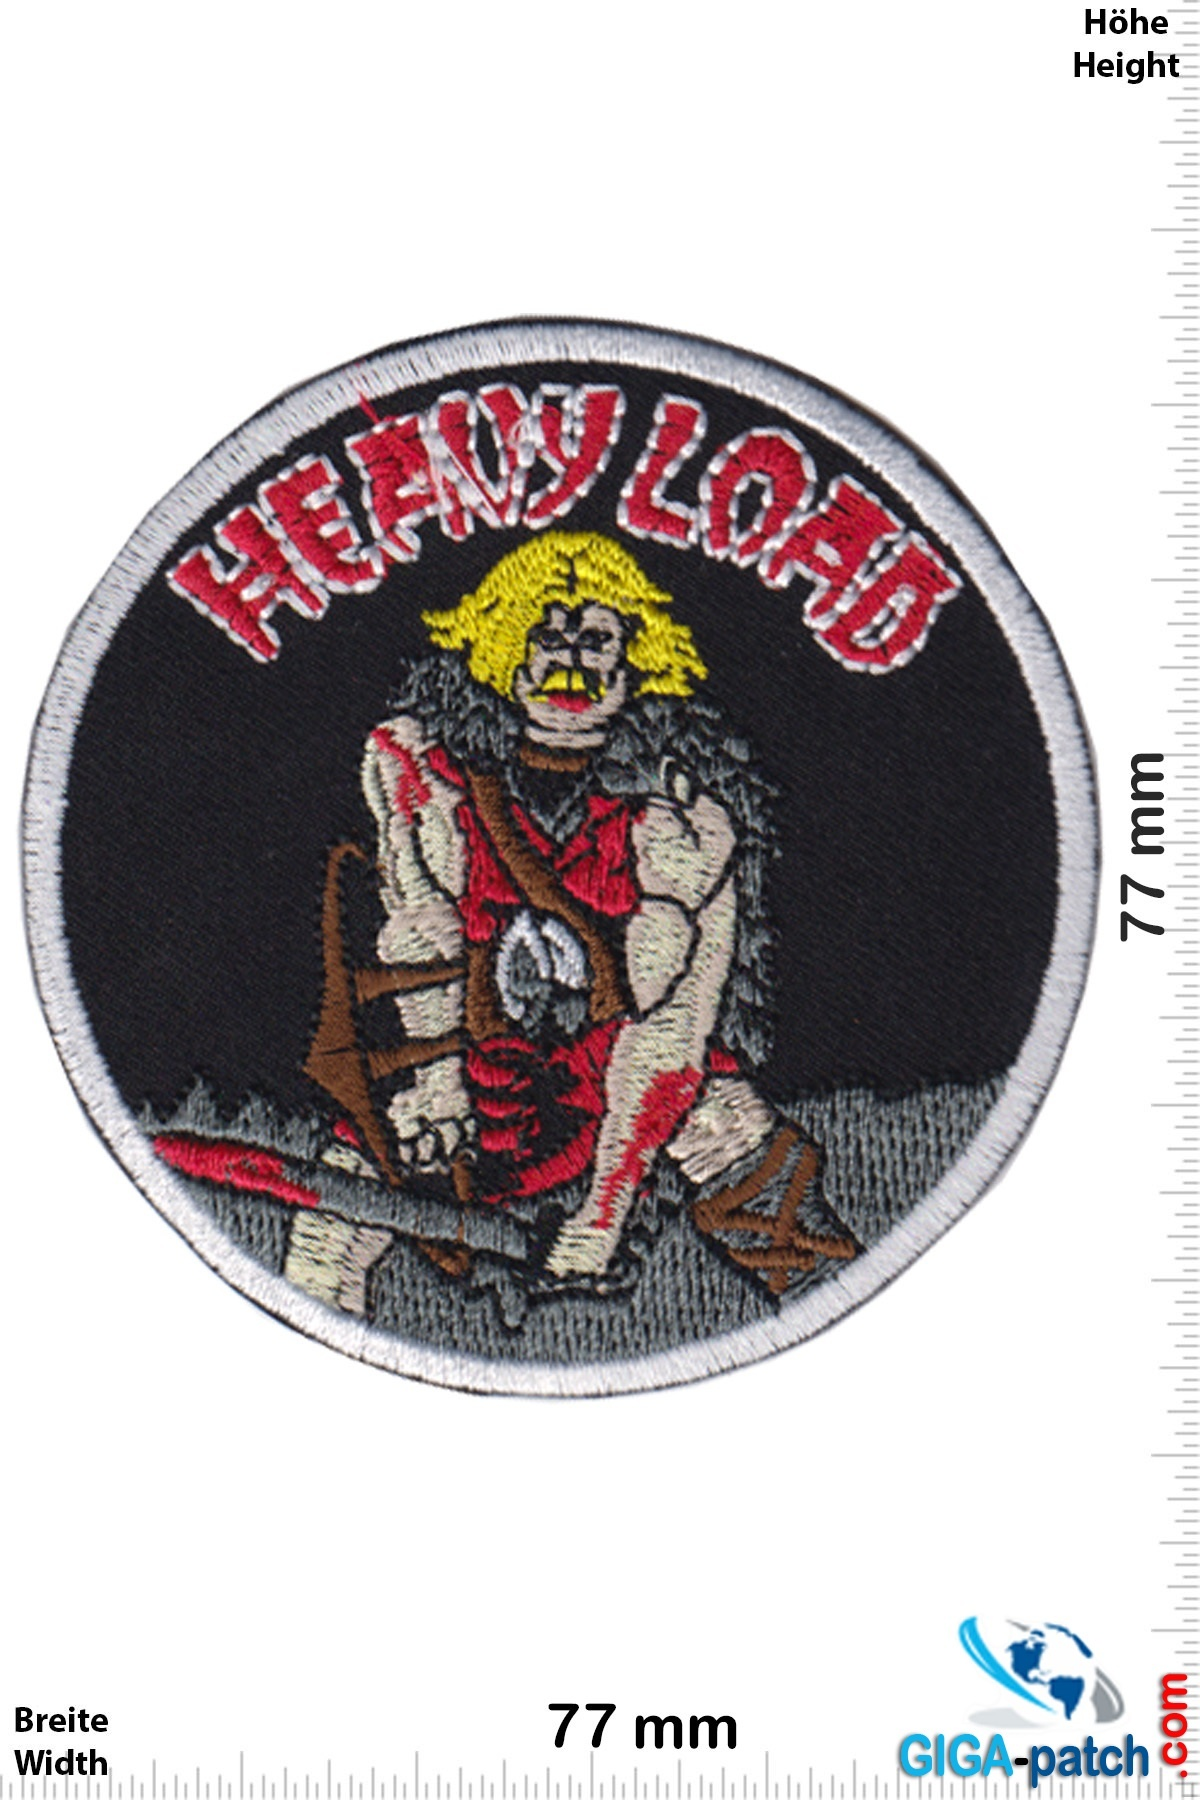 Heavy Load - Heavy Metal